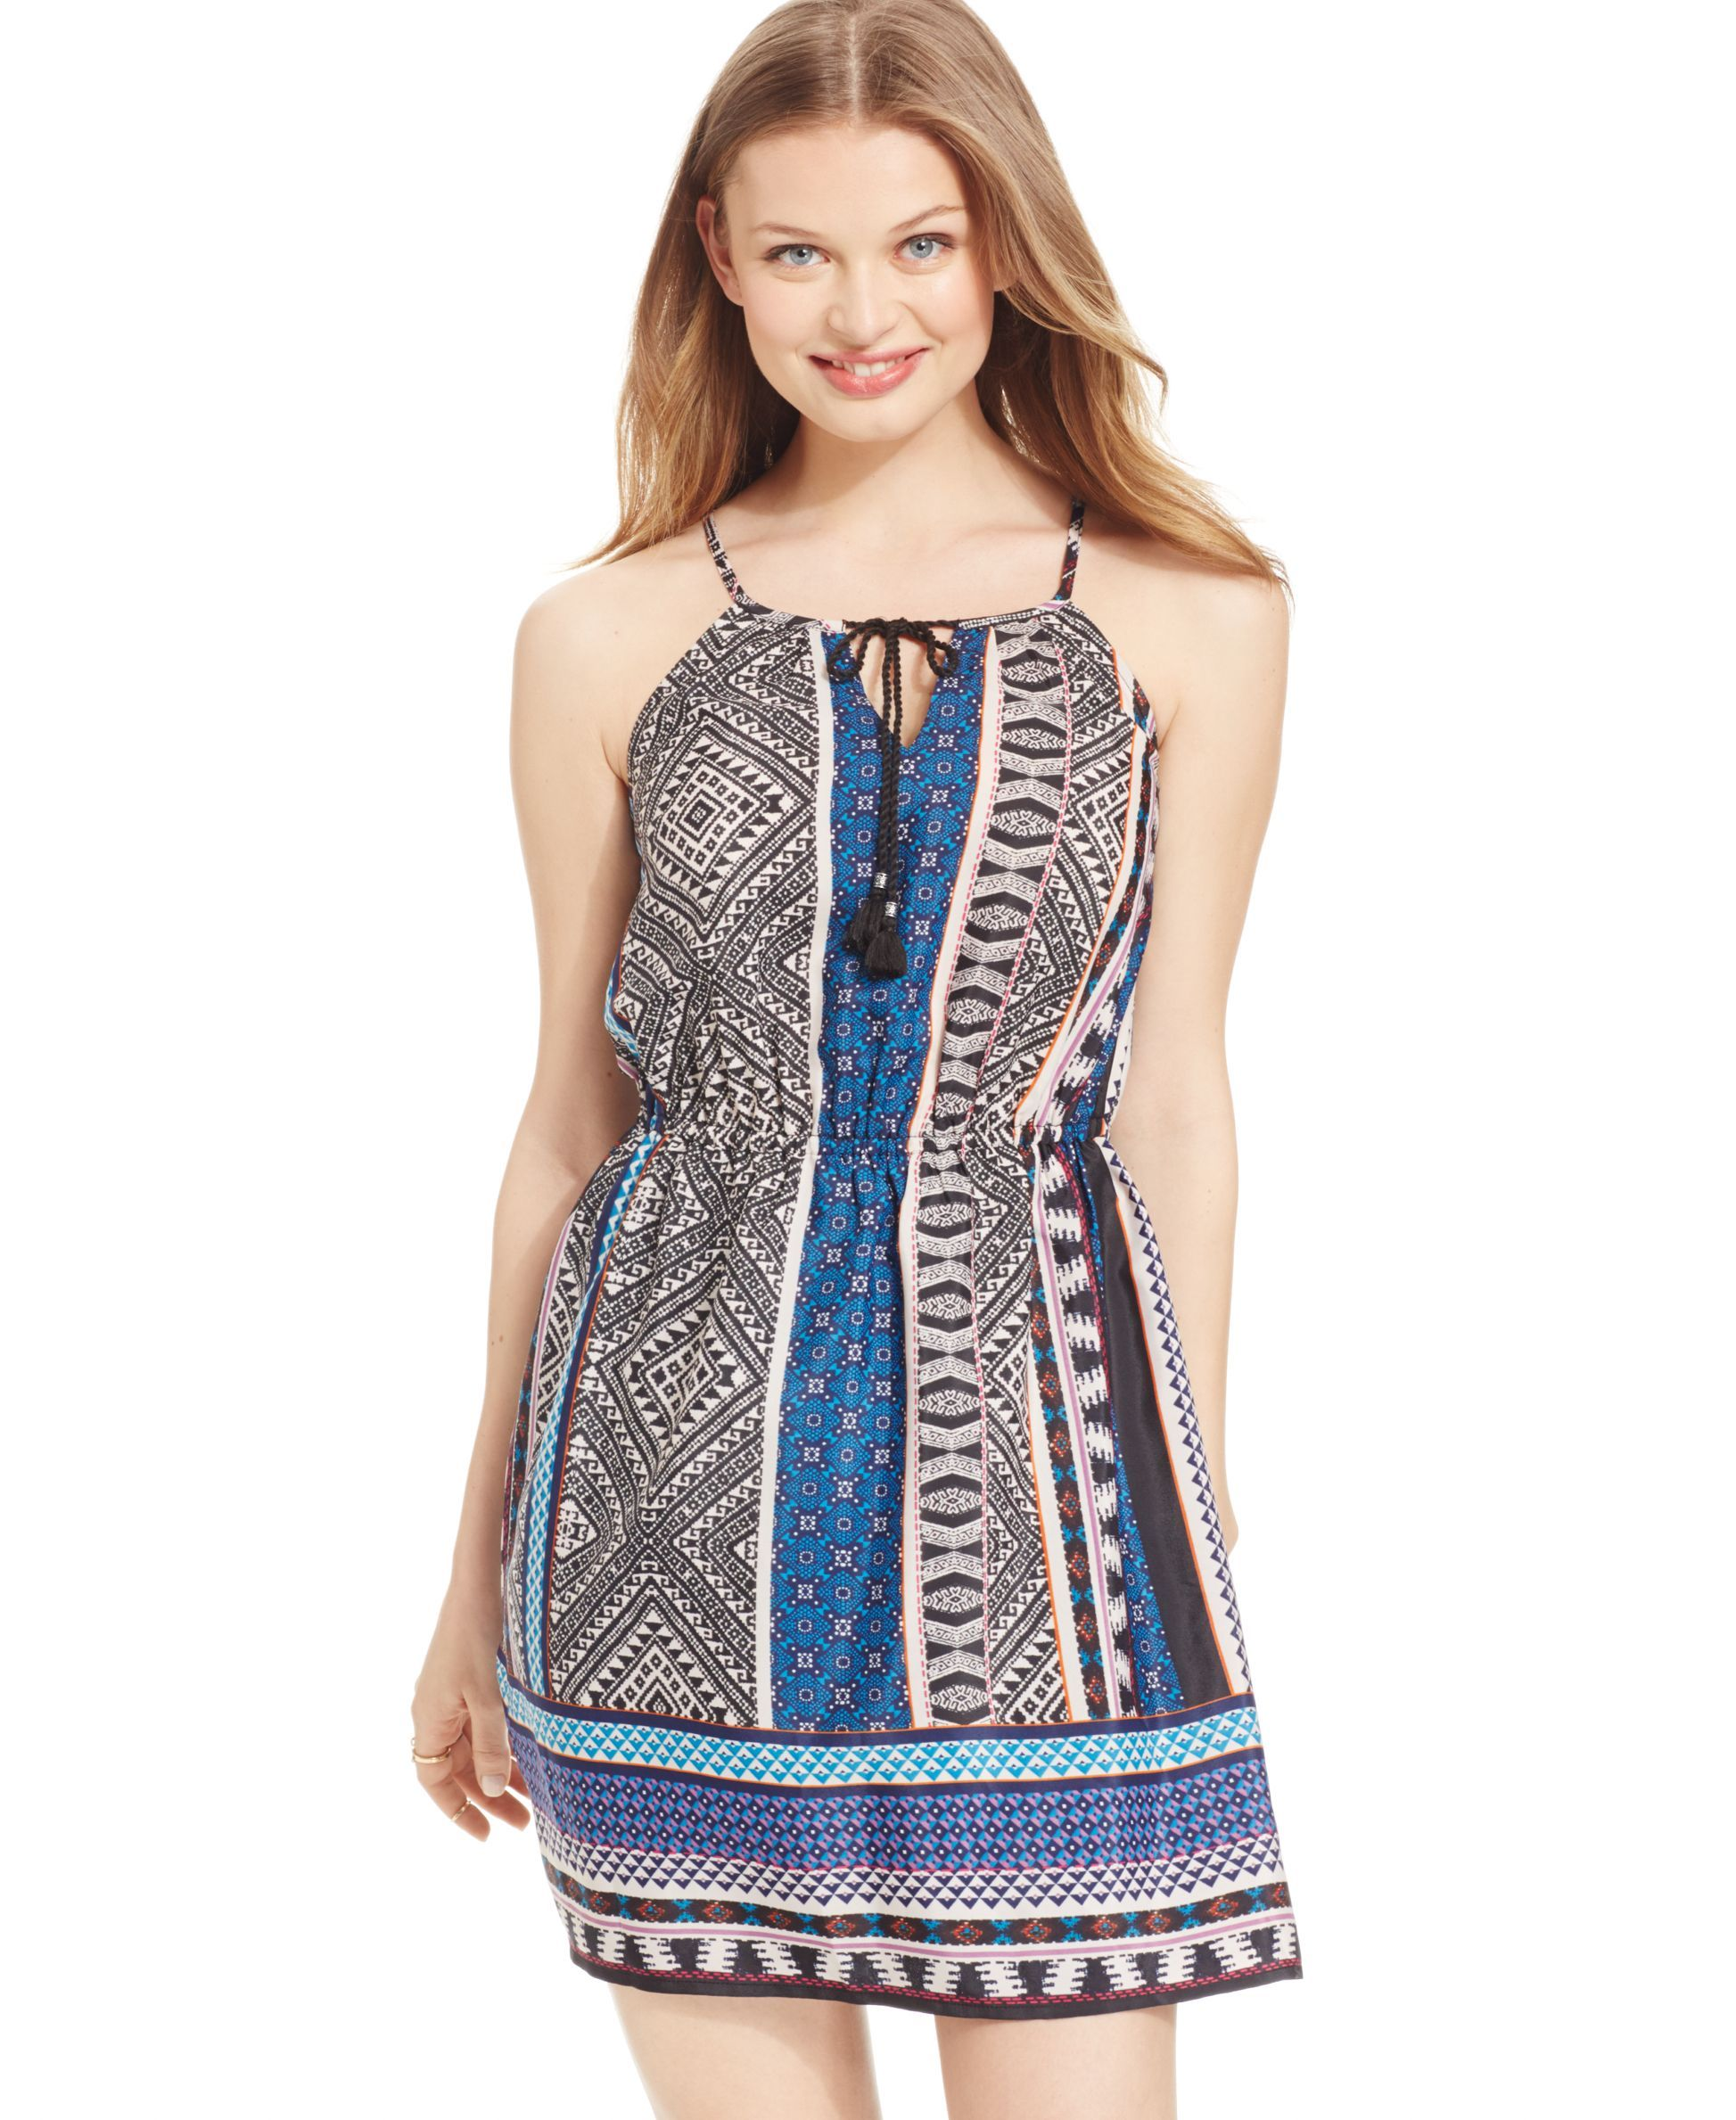 Be bop juniorsu print halter dress products pinterest products